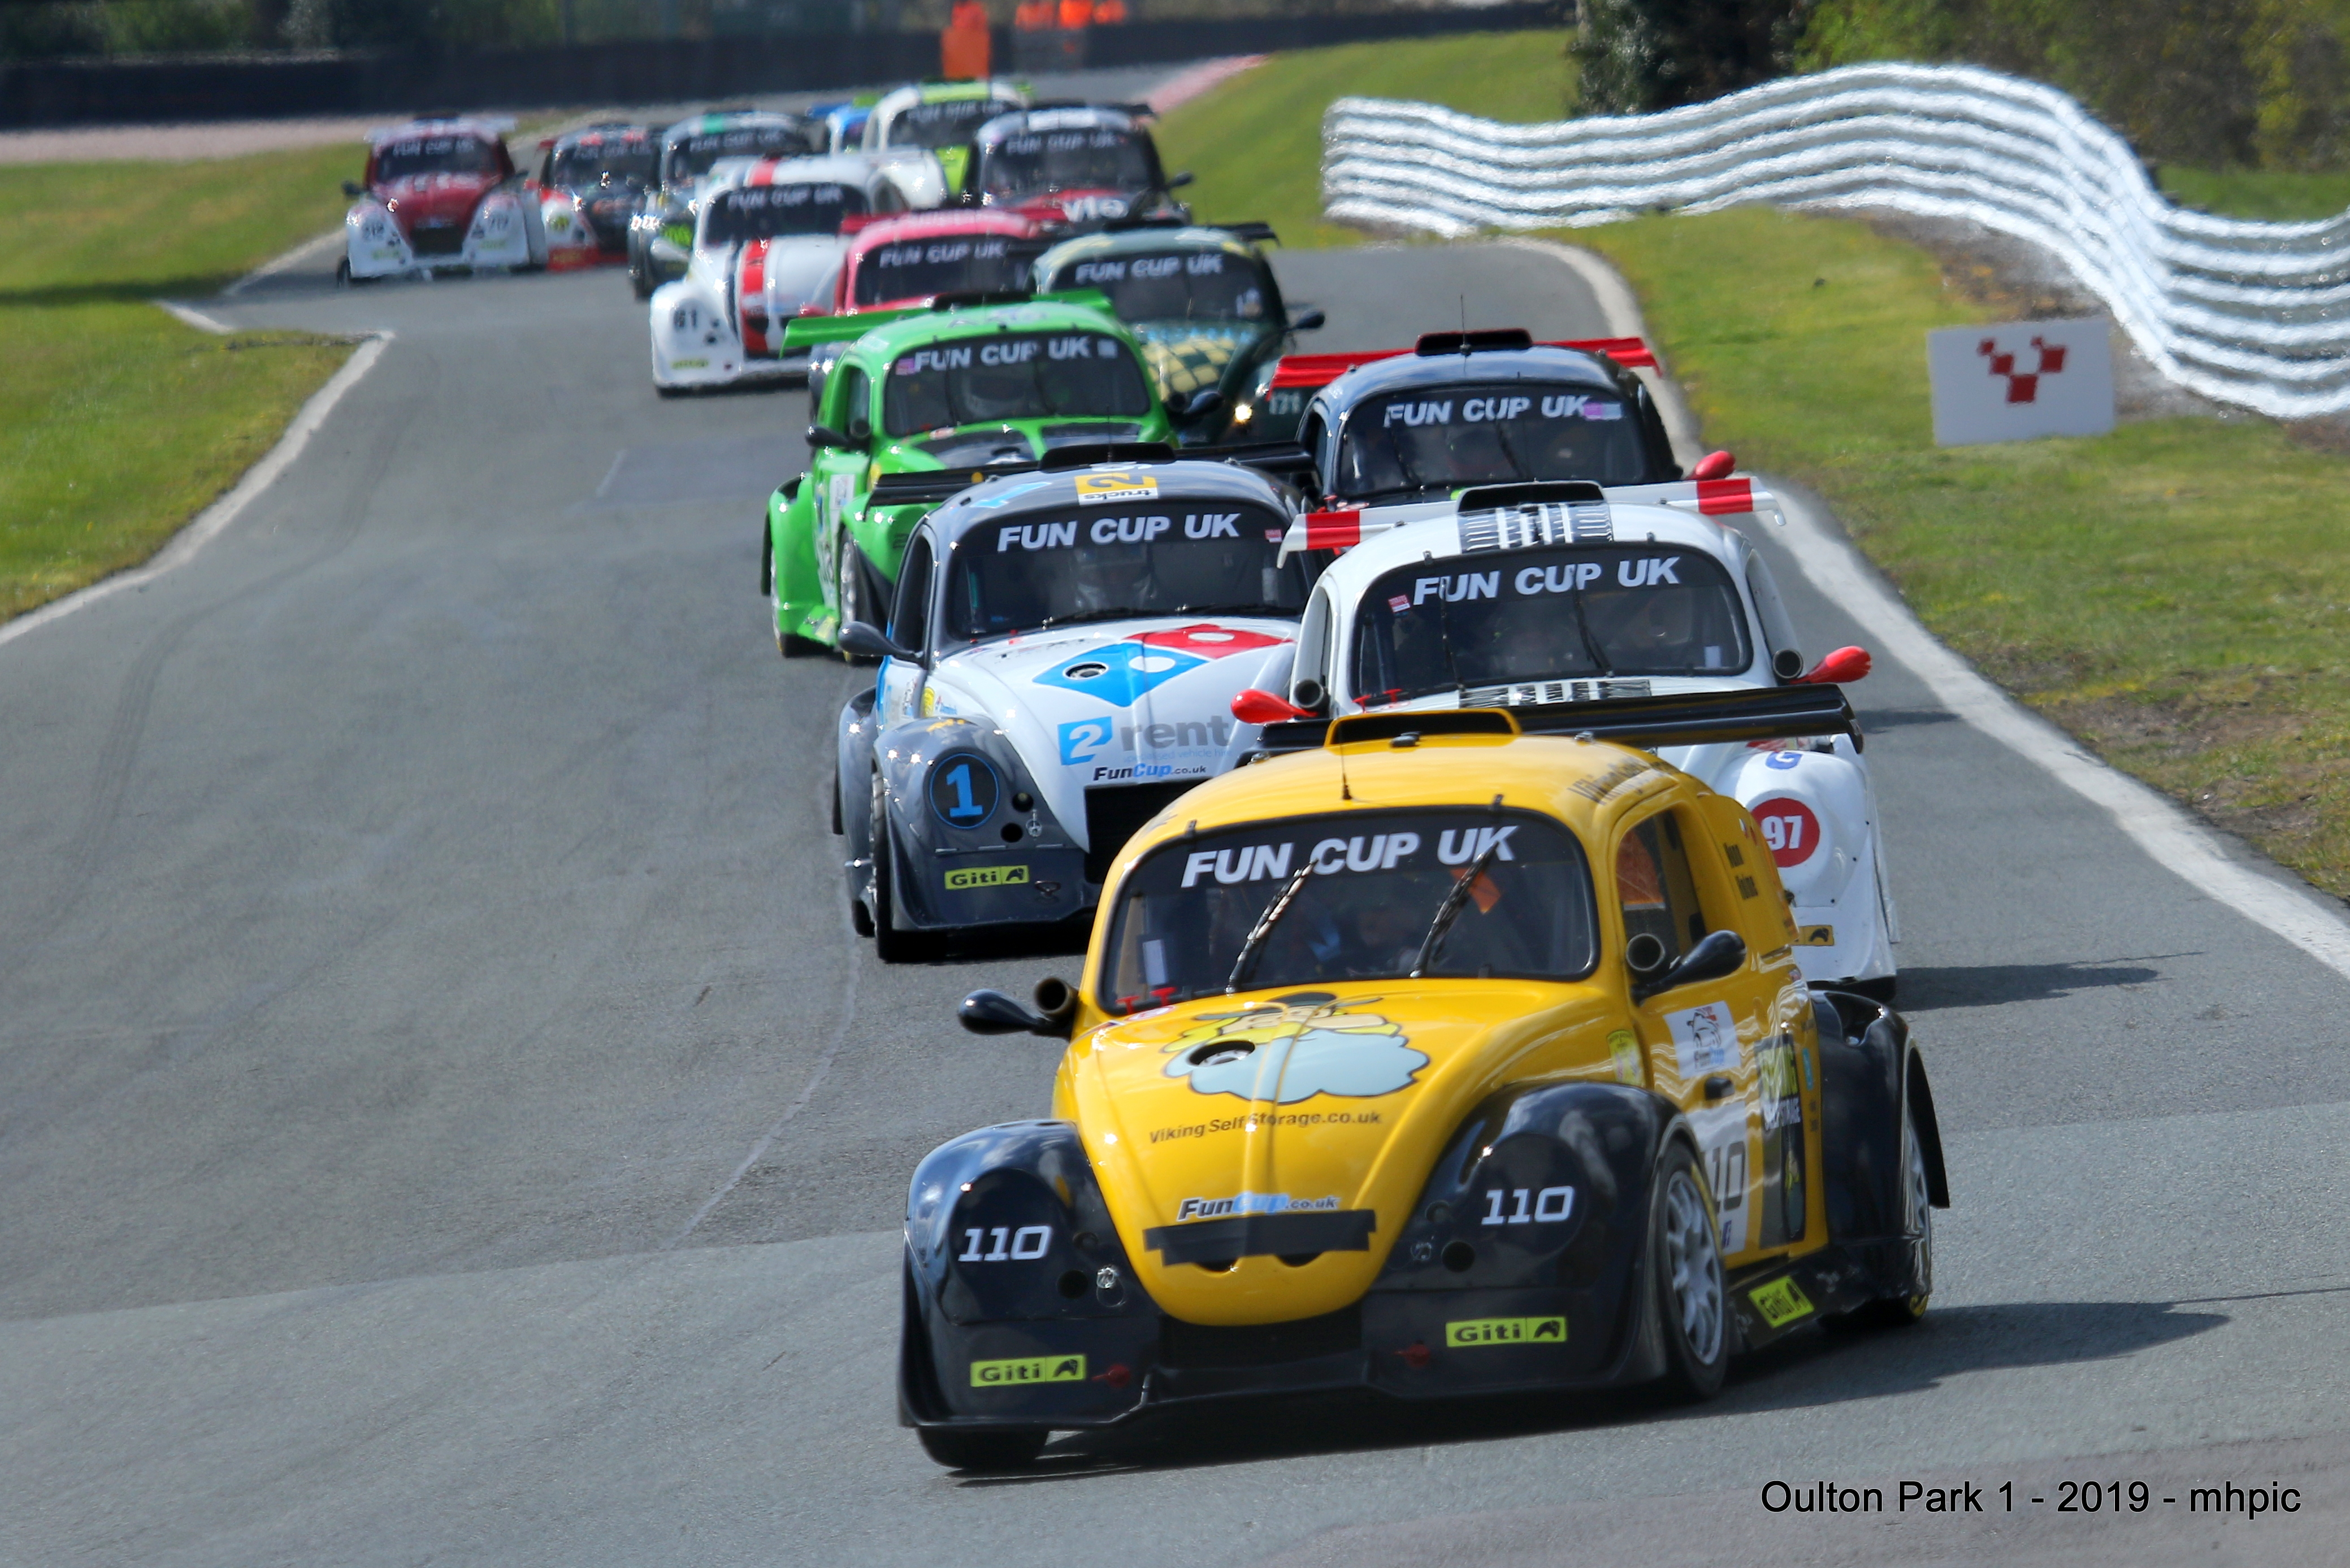 Difficult day at Oulton Park for Viking